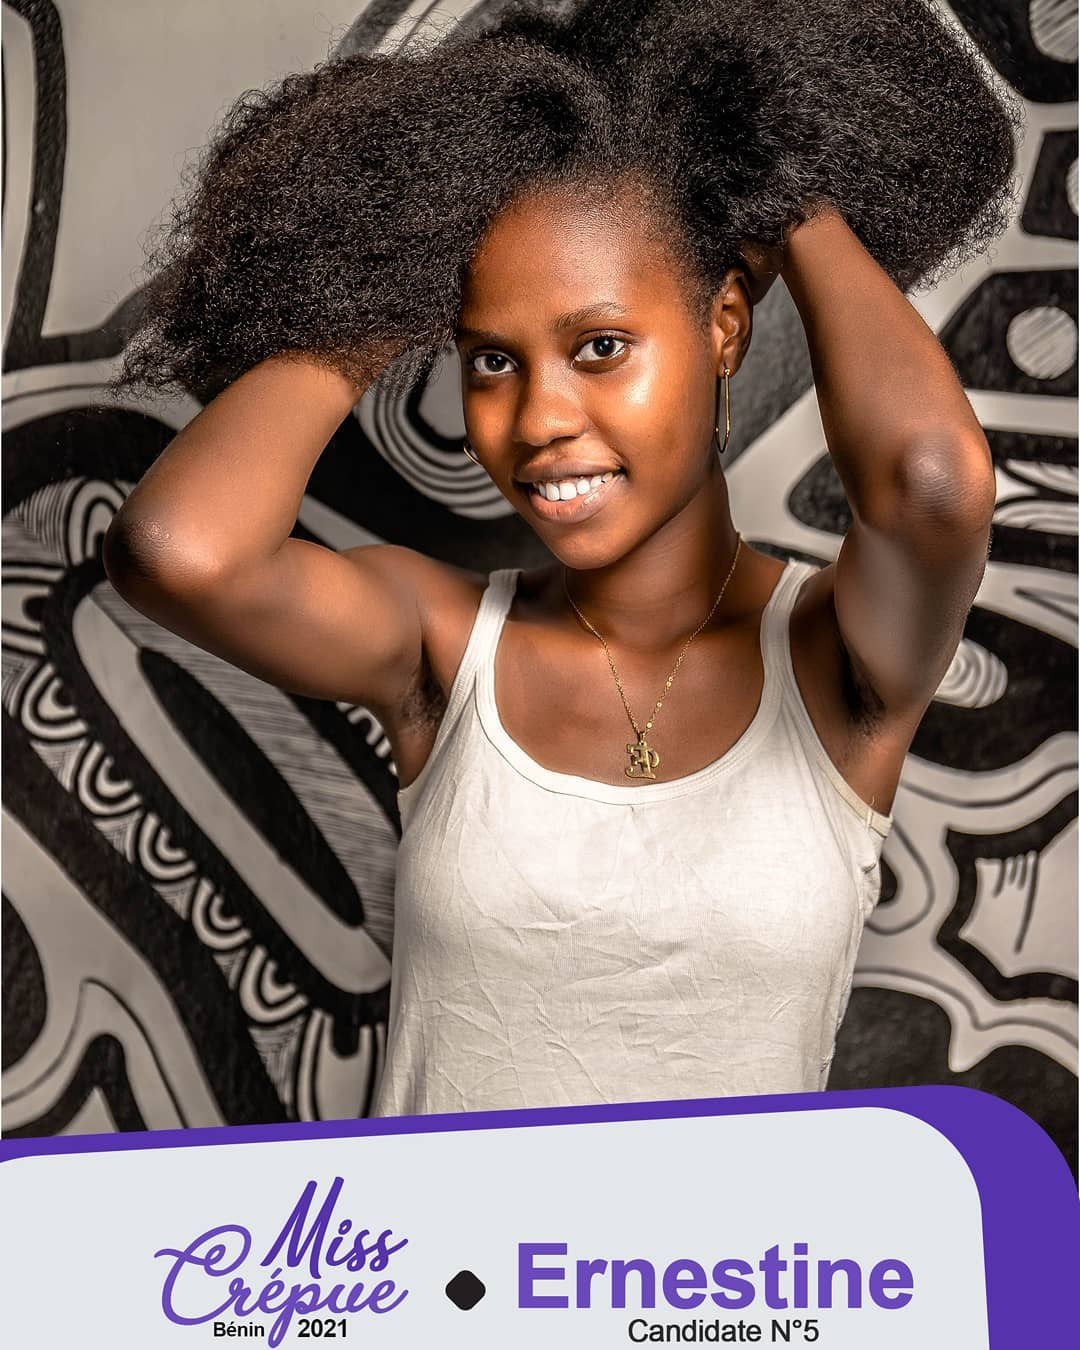 candidatas a miss crepue benin 2021. final: 31 july. OqNEib